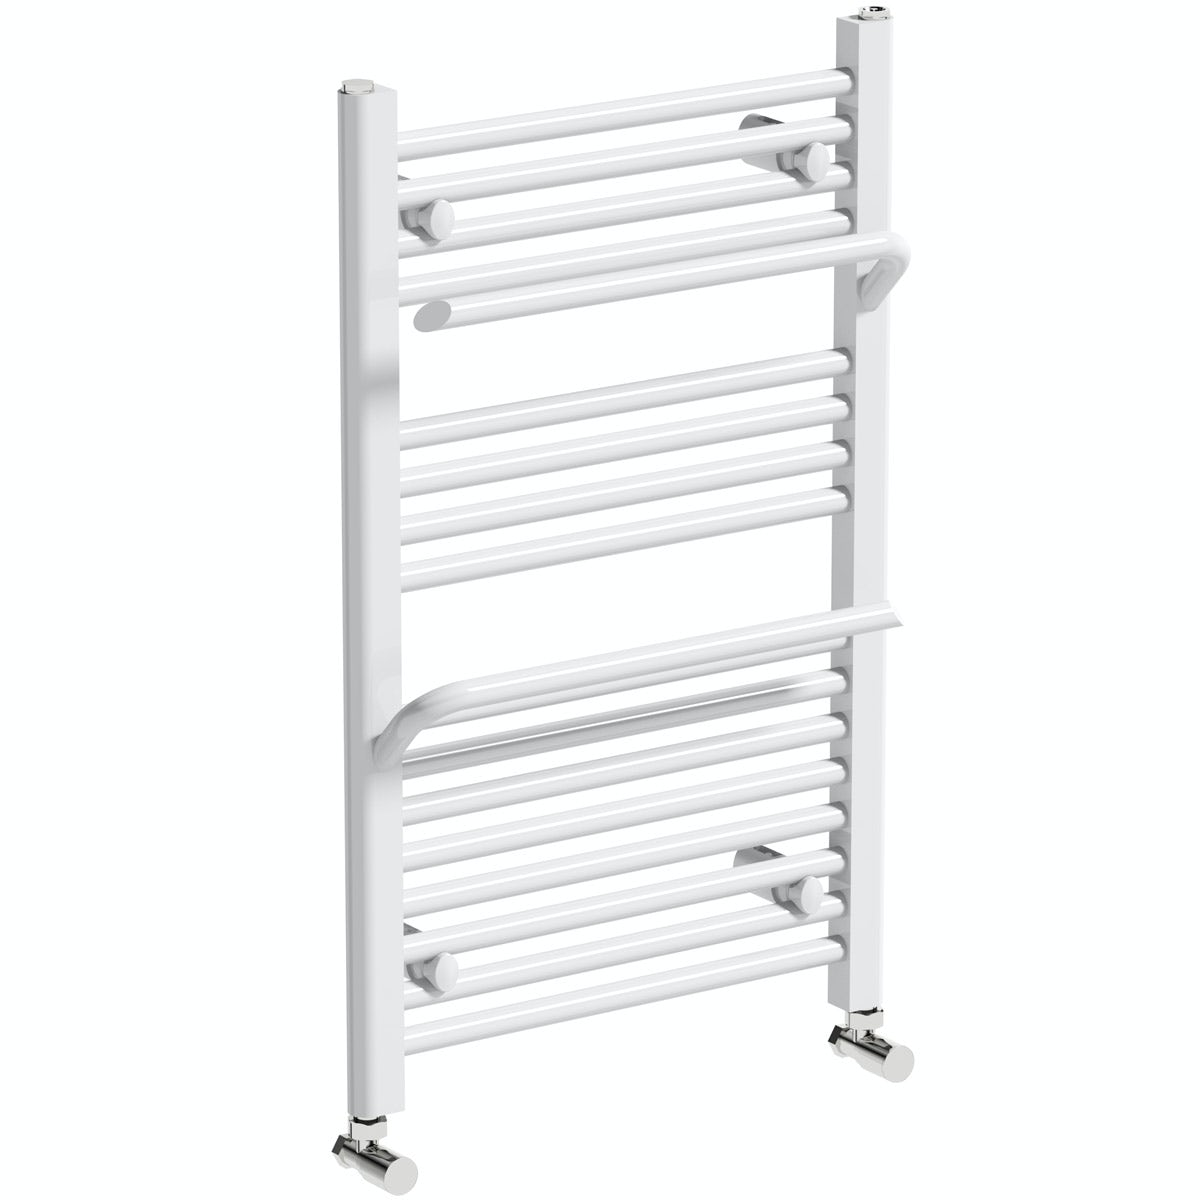 Mode Rohe white heated towel rail with hangers 800 x 500